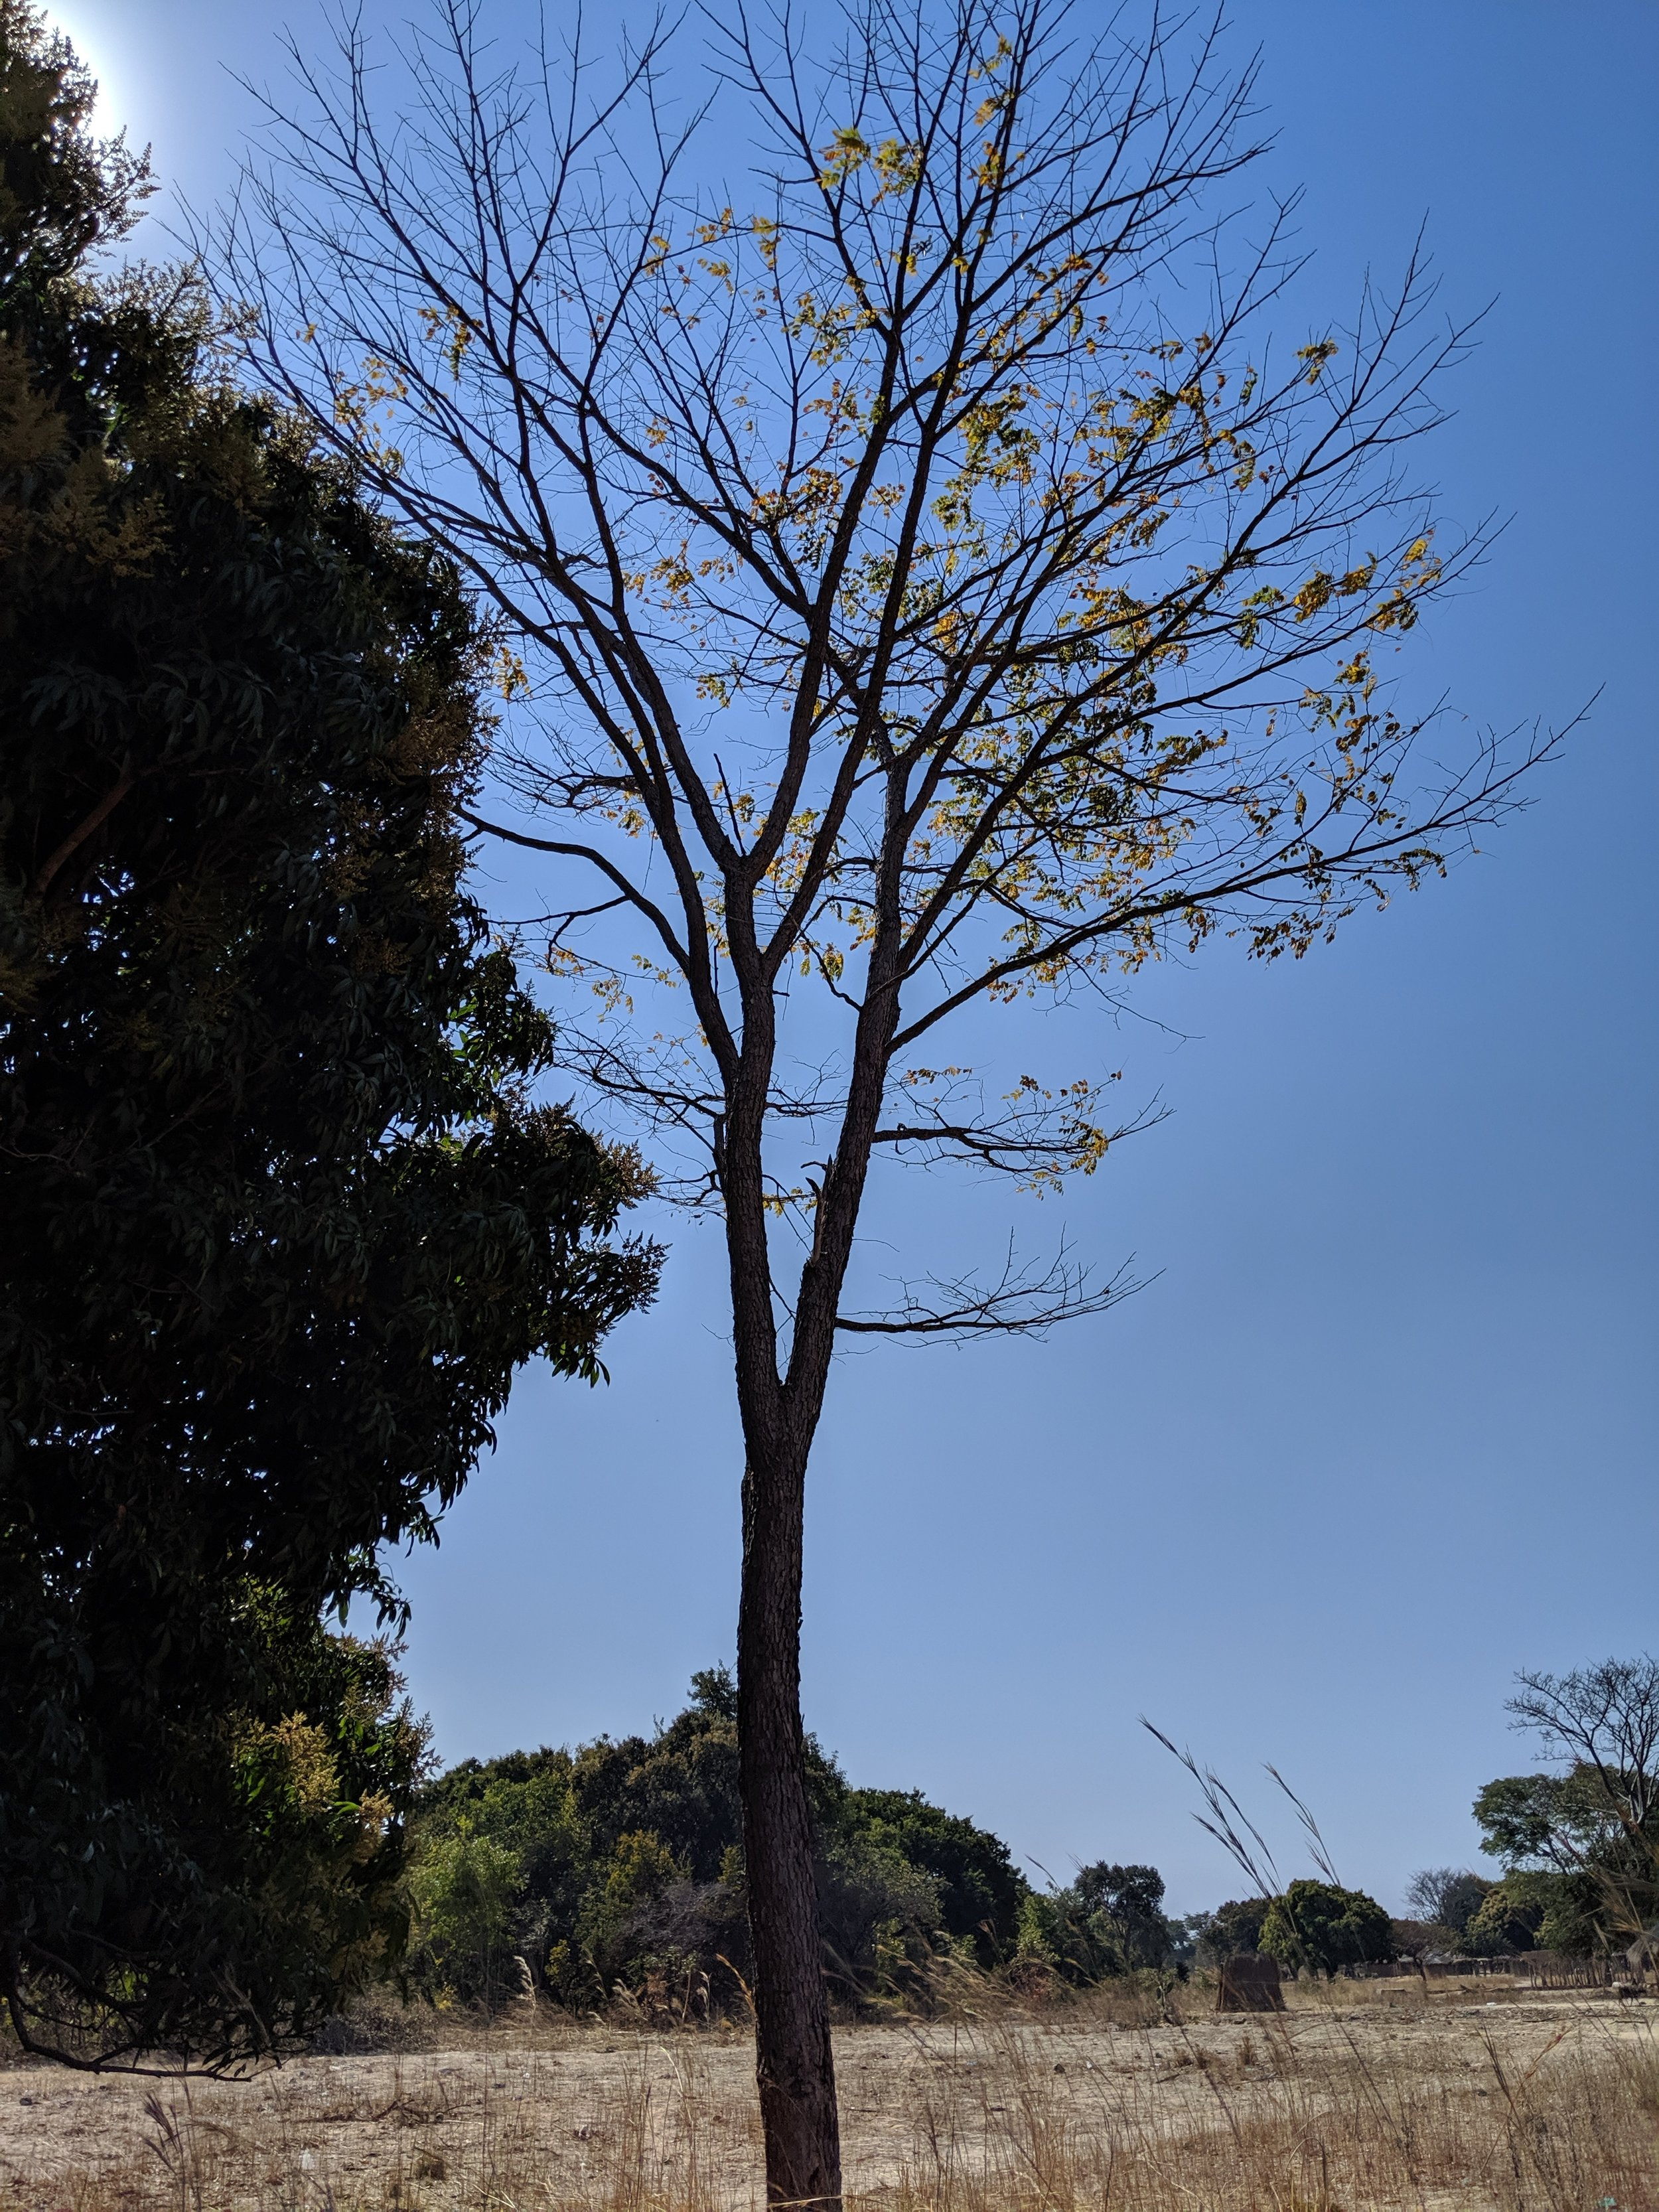 A young African teak tree or mukwa